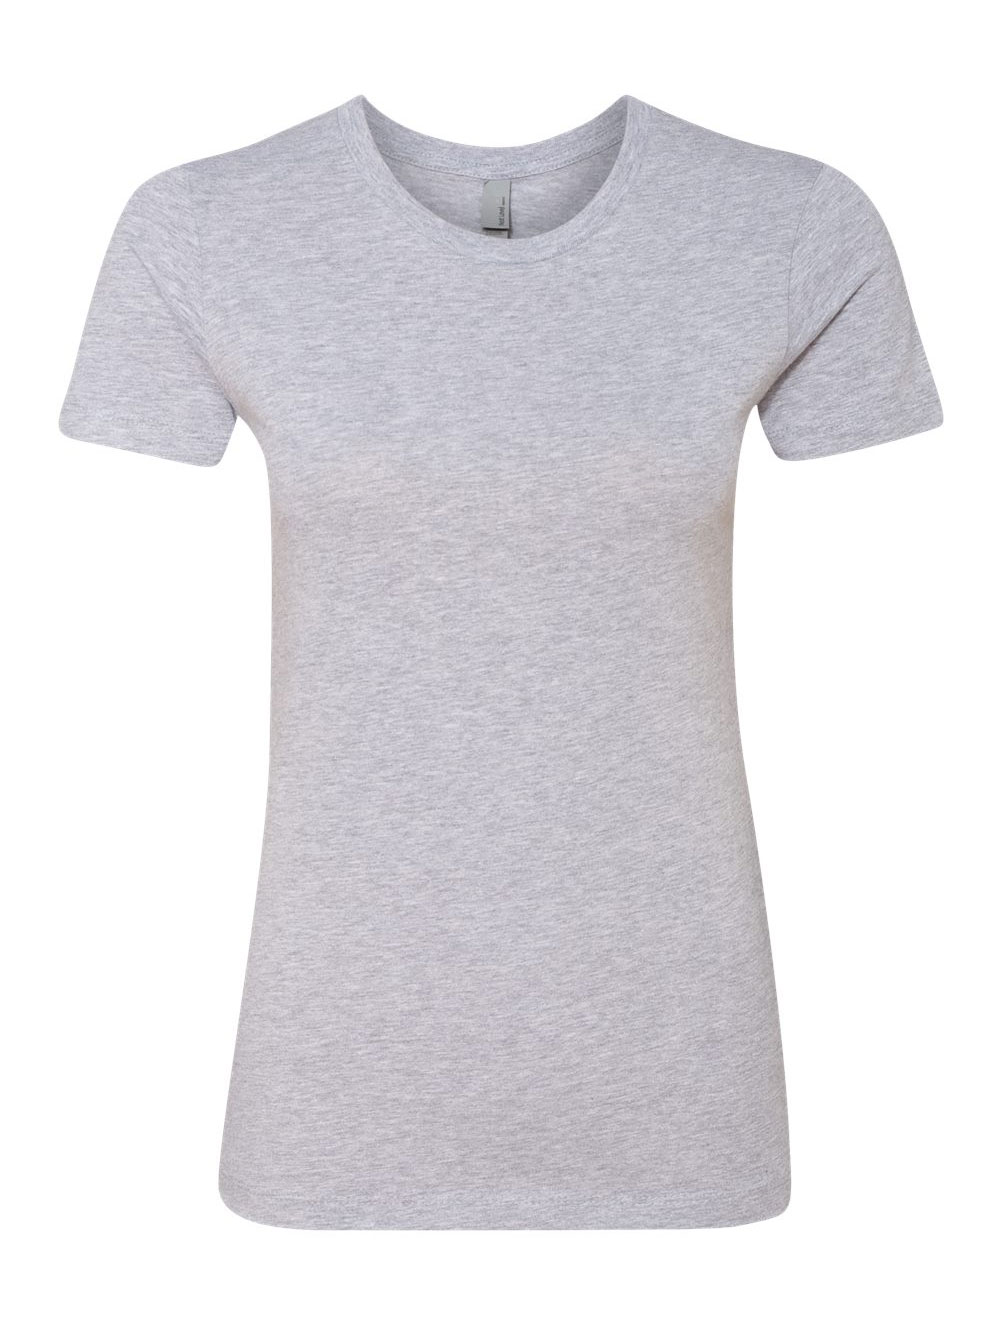 Next Level Ladies Made In USA Cotton Boyfriend Tee